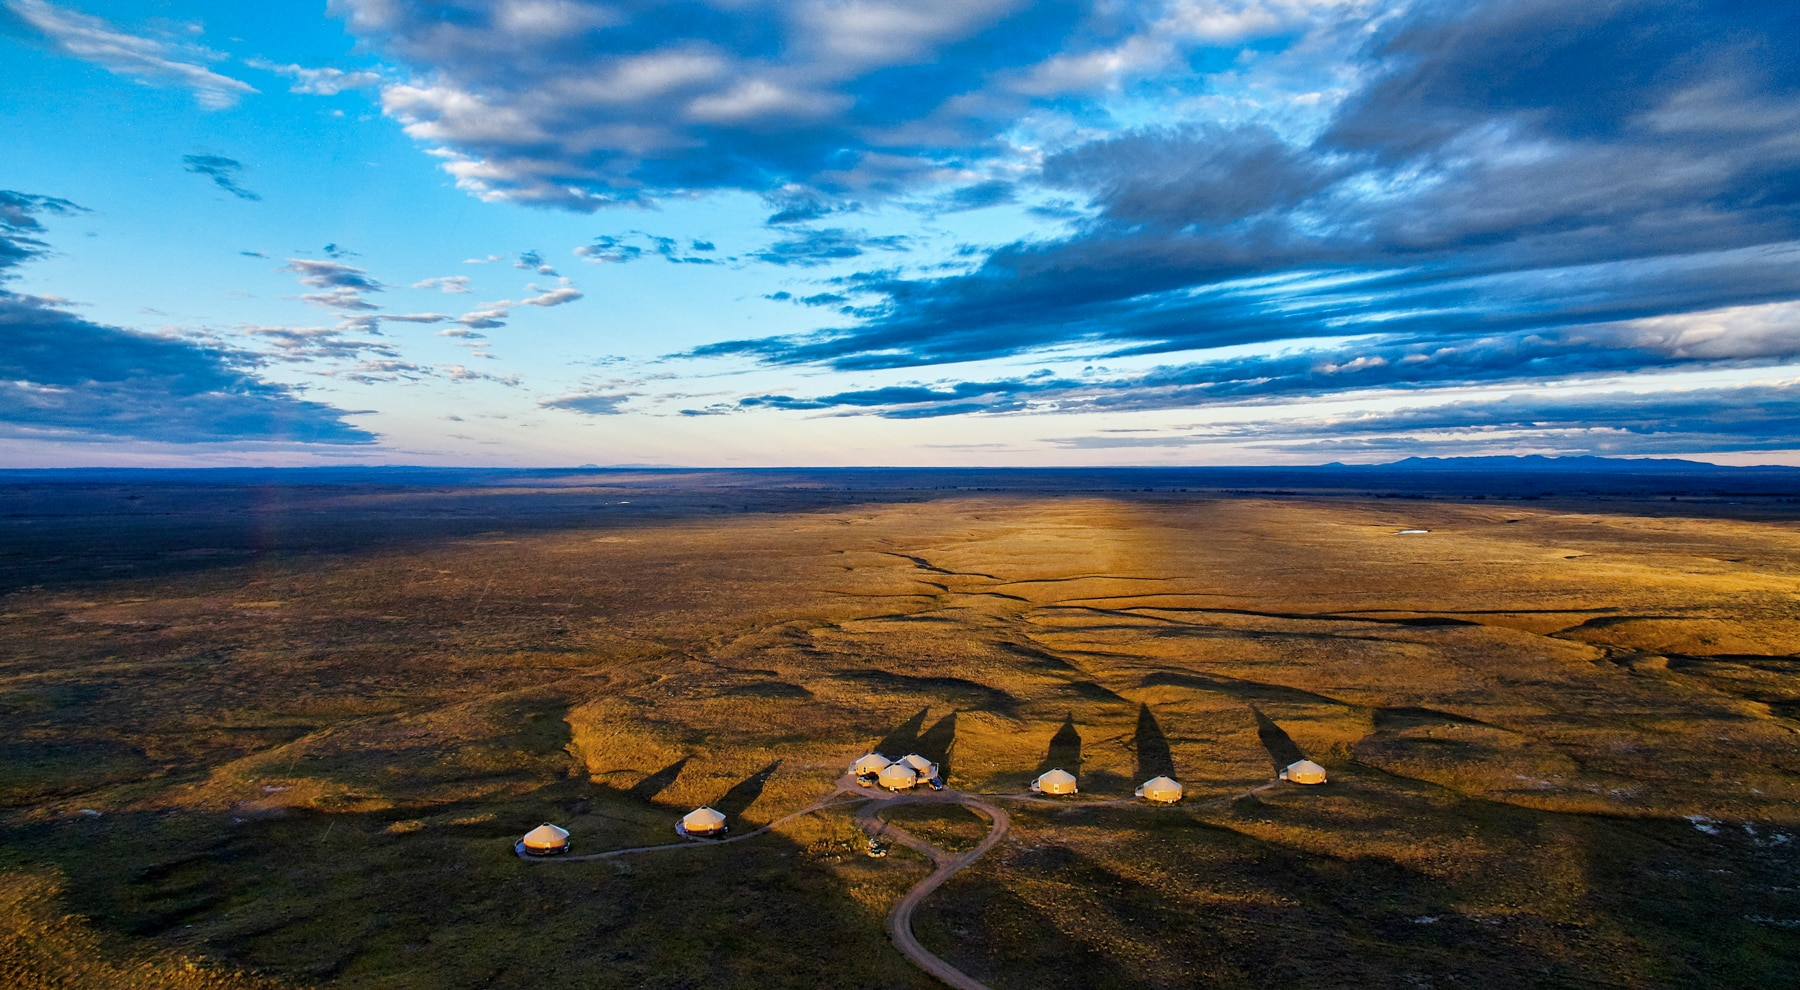 Bird's-eye view of a group of tents on open prairie at sunset (Gib Myers/APR)